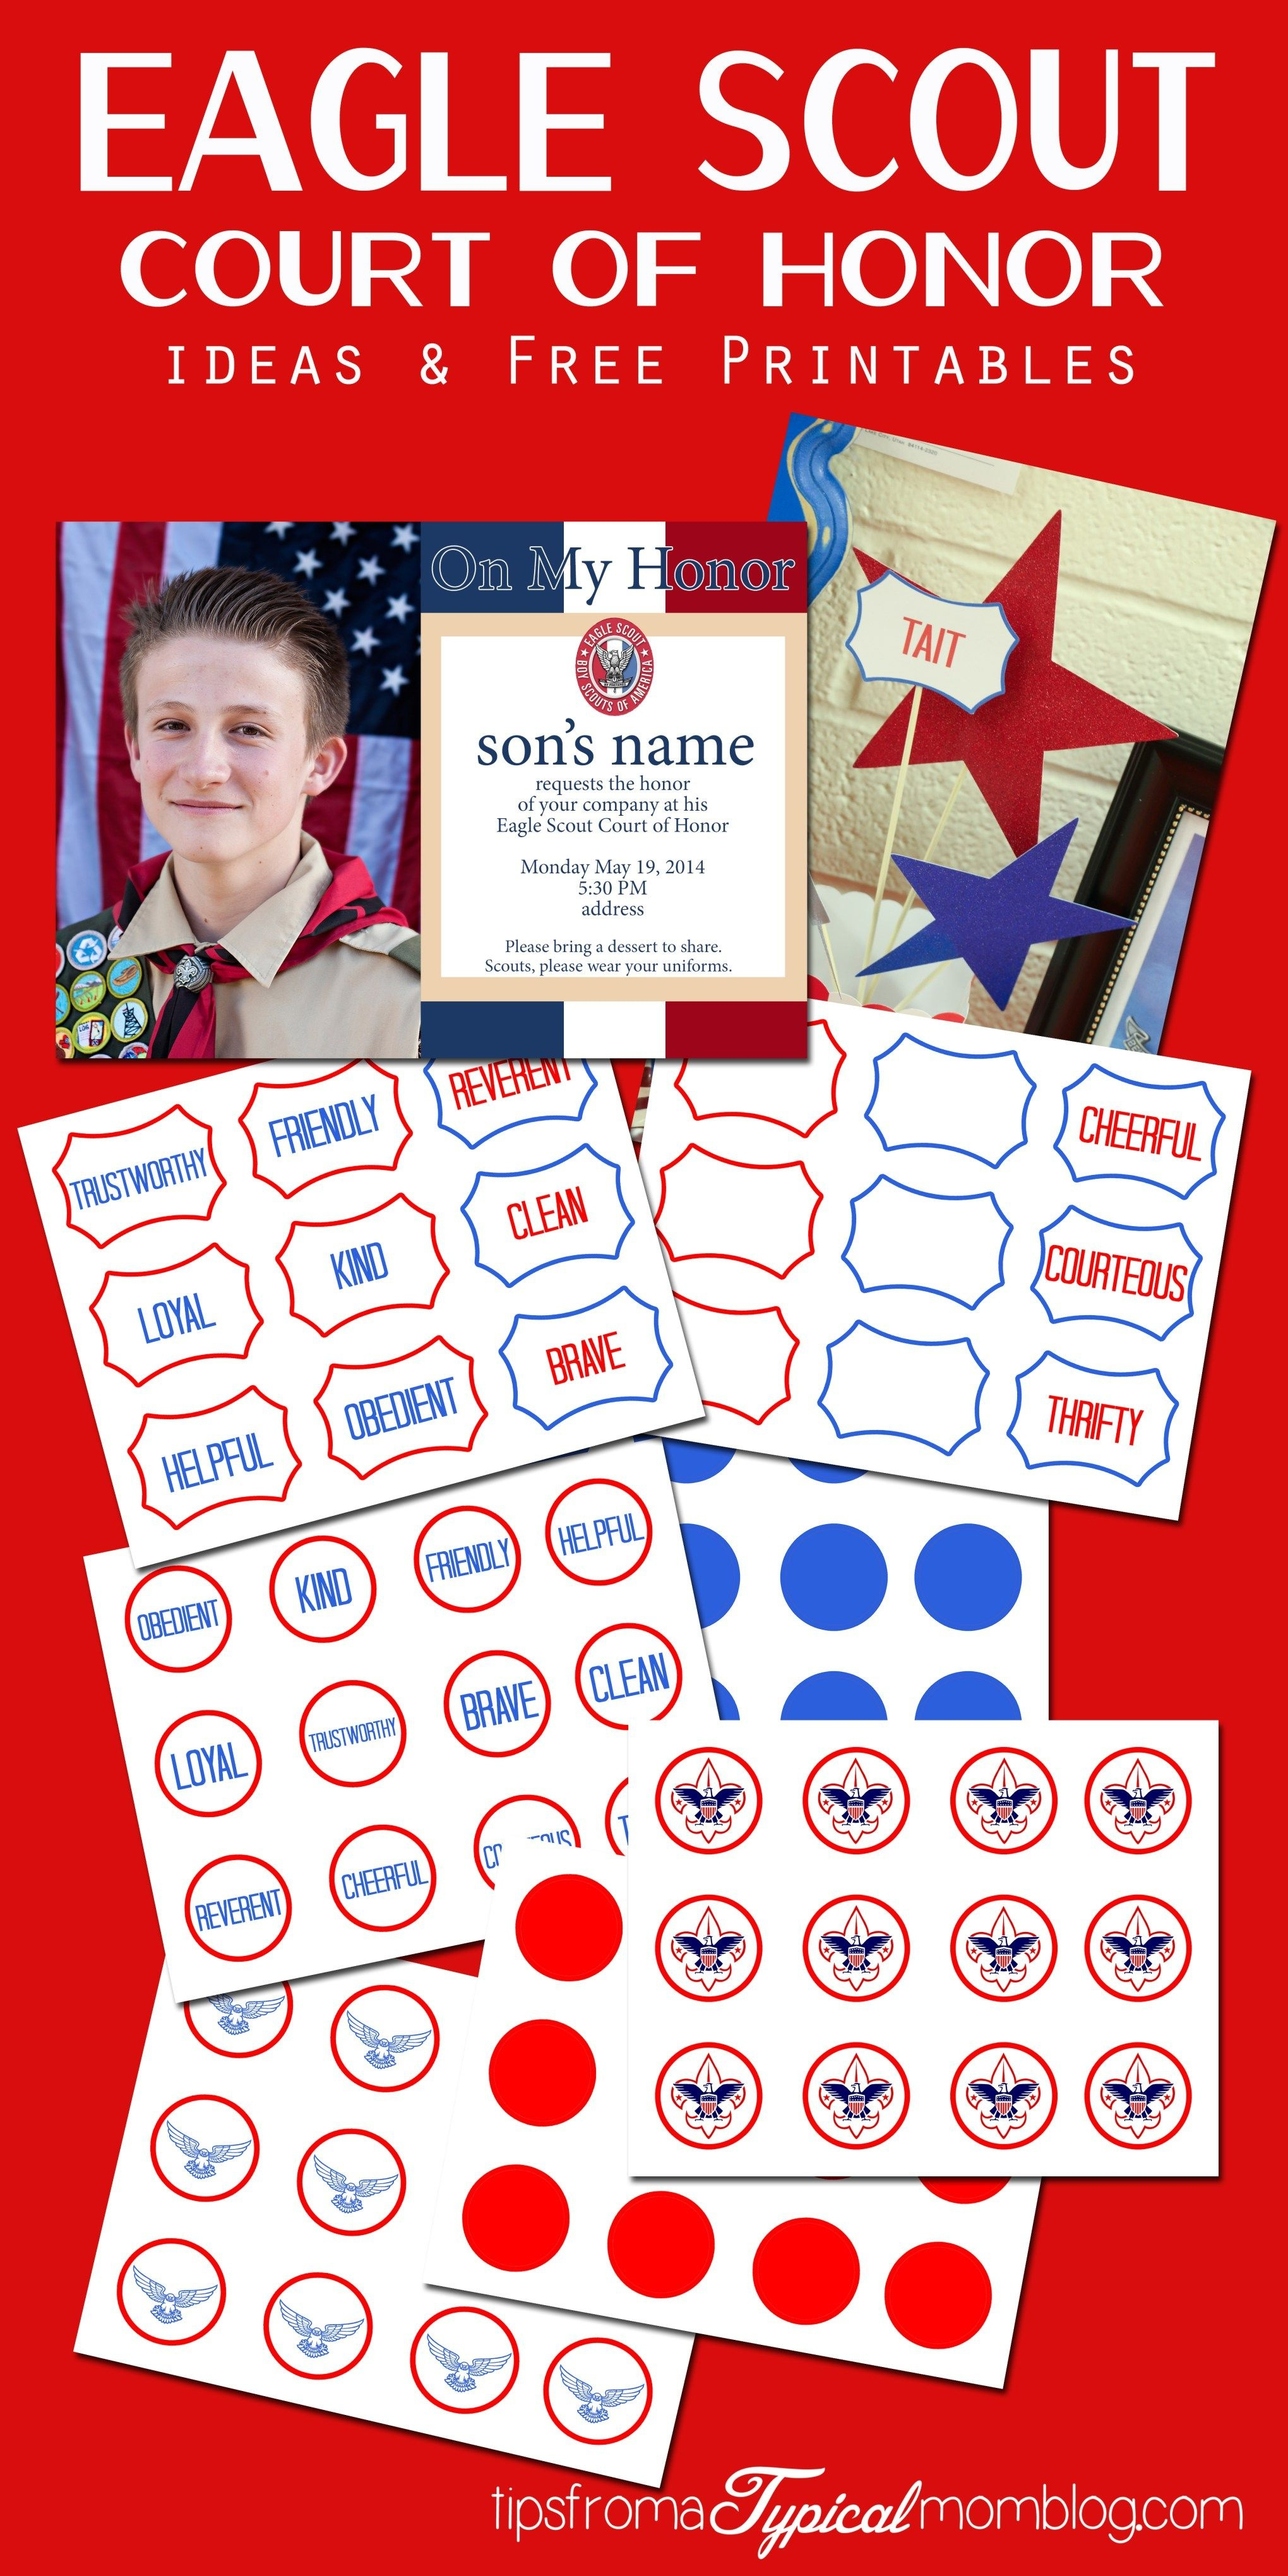 Eagle Scout Court Of Honor Ideas And Free Printables   Projects To - Free Eagle Scout Printables